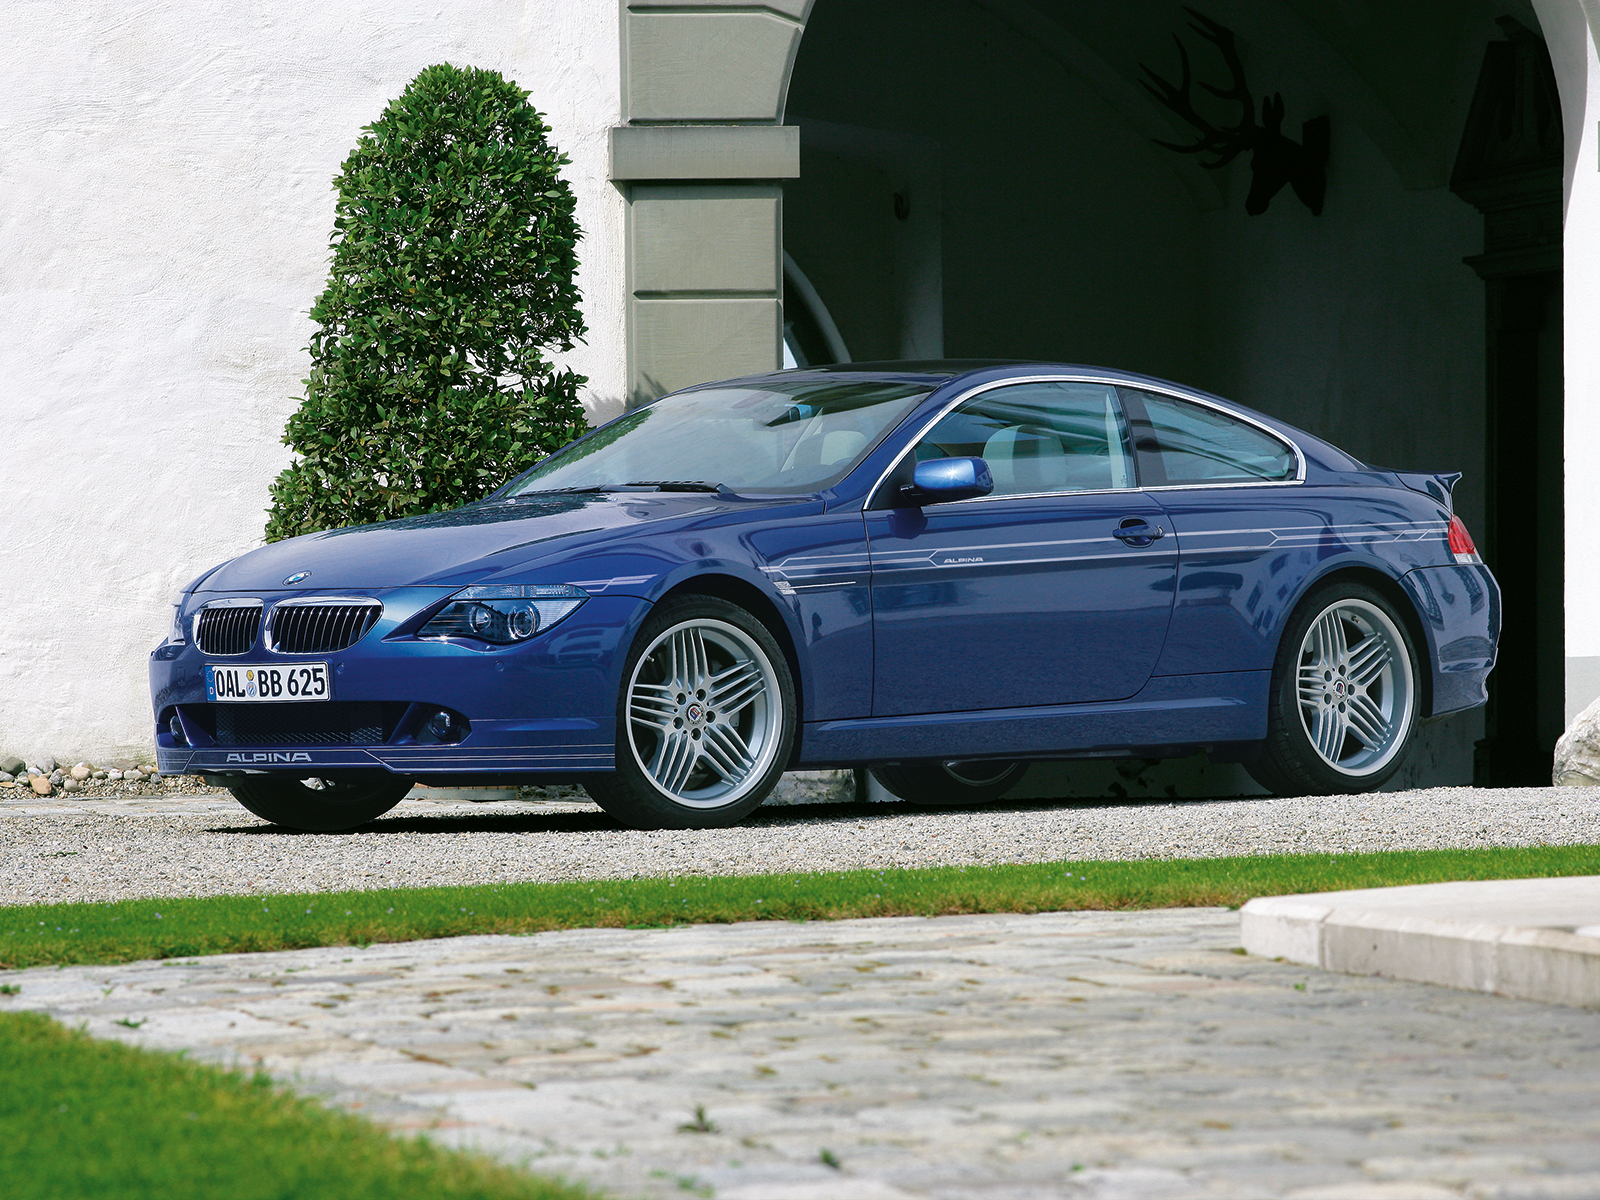 Bmw 6 Series E63 64 Alpina Automobiles